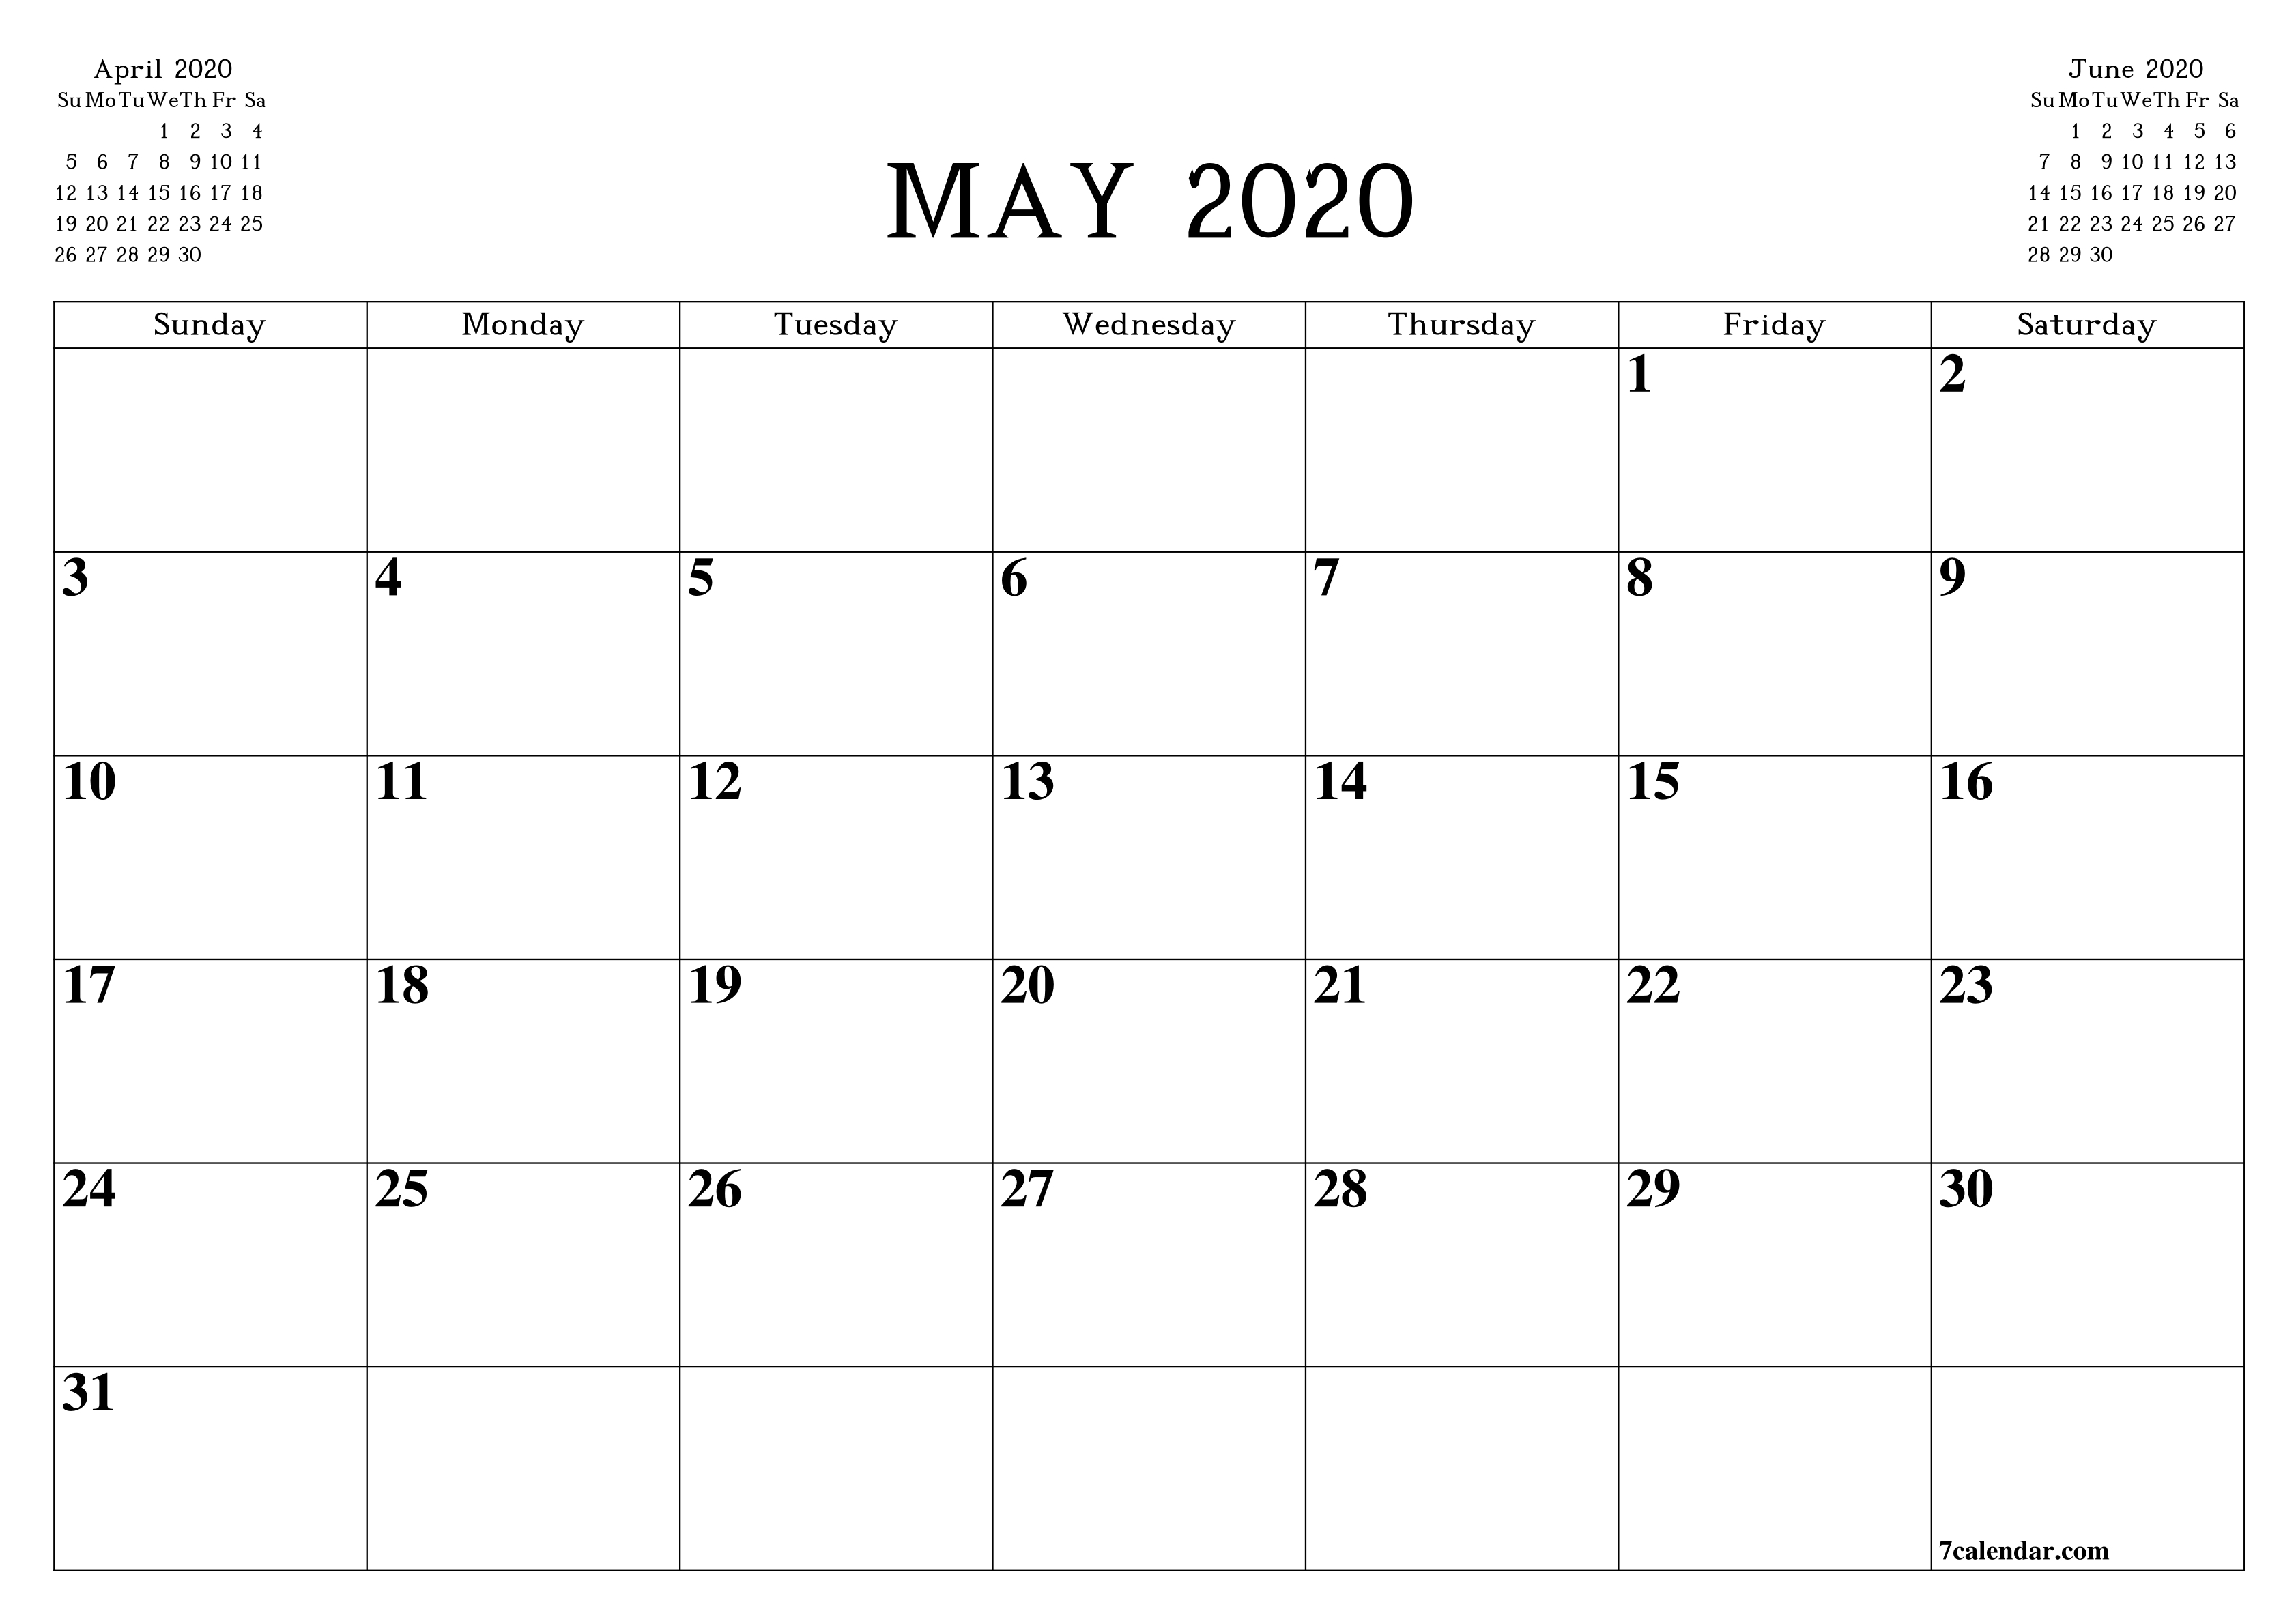 Free Printable Blank Monthly Calendar And Planner For May 8 By 11 Size Calendar Template